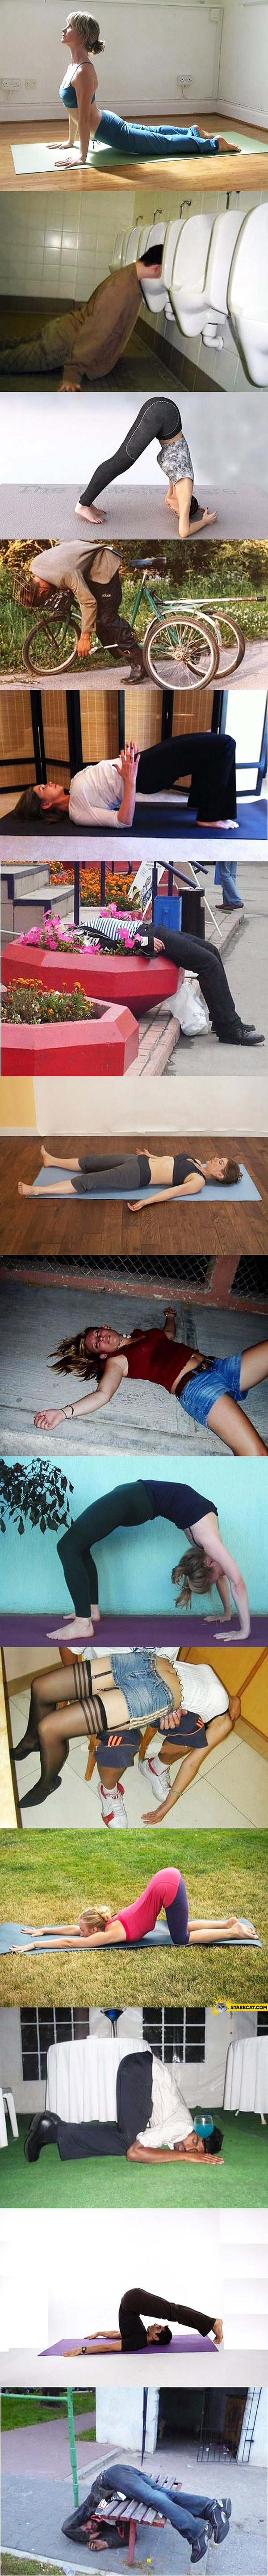 Drunk yoga drunken fail